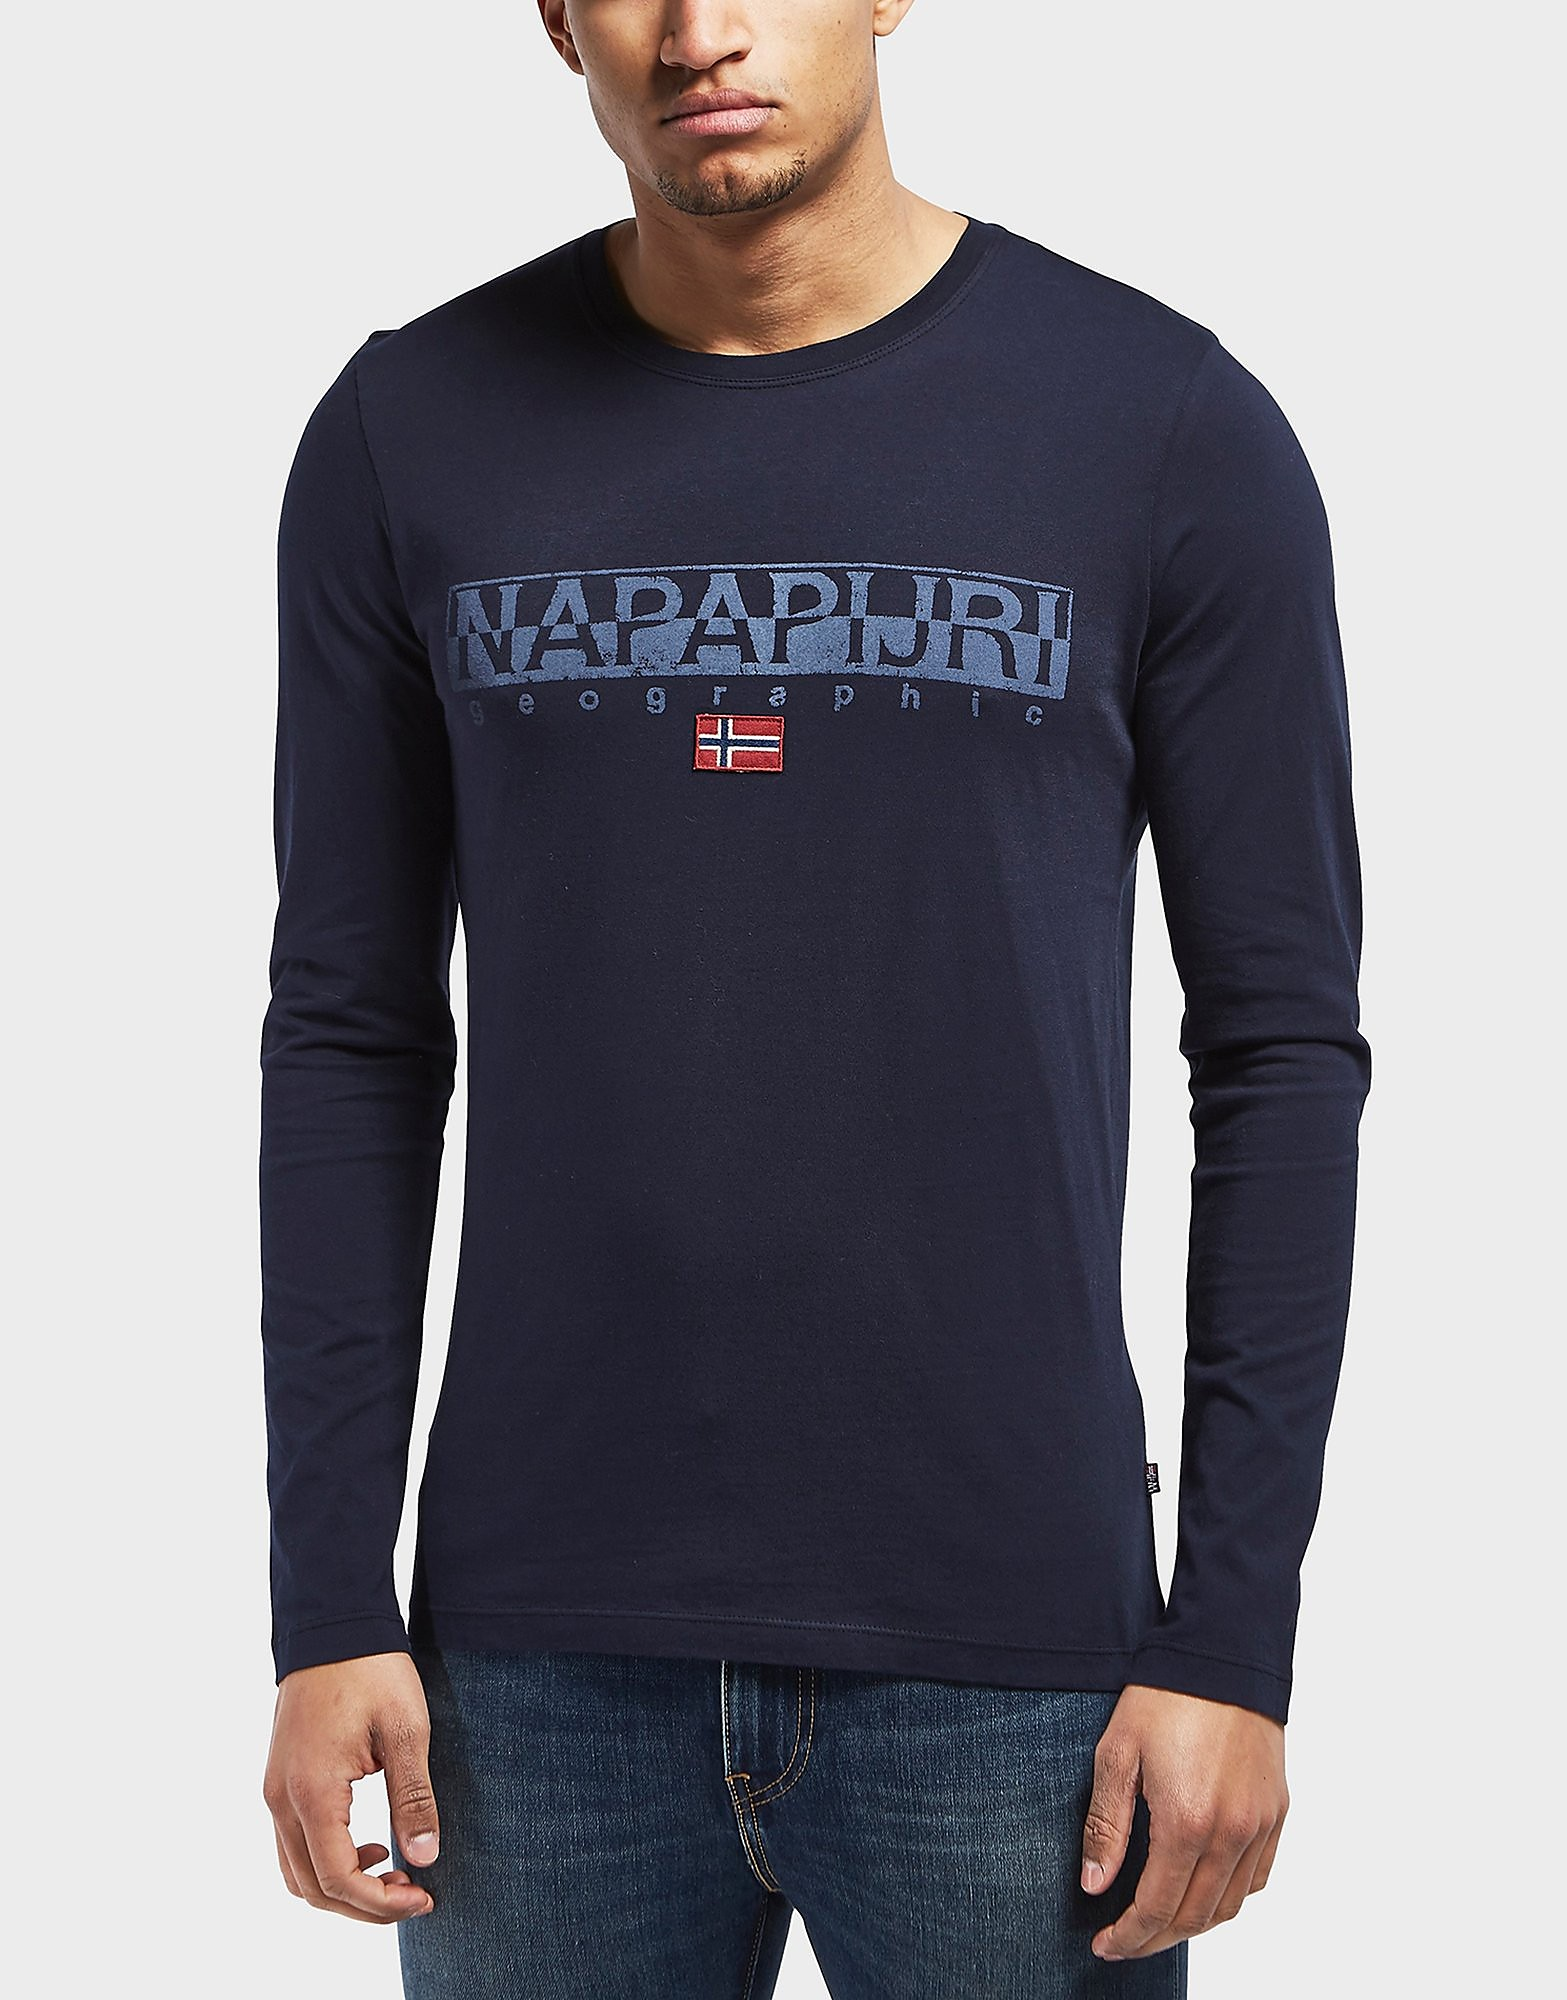 Napapijri Sapriol Long Sleeve T-Shirt - Exclusive